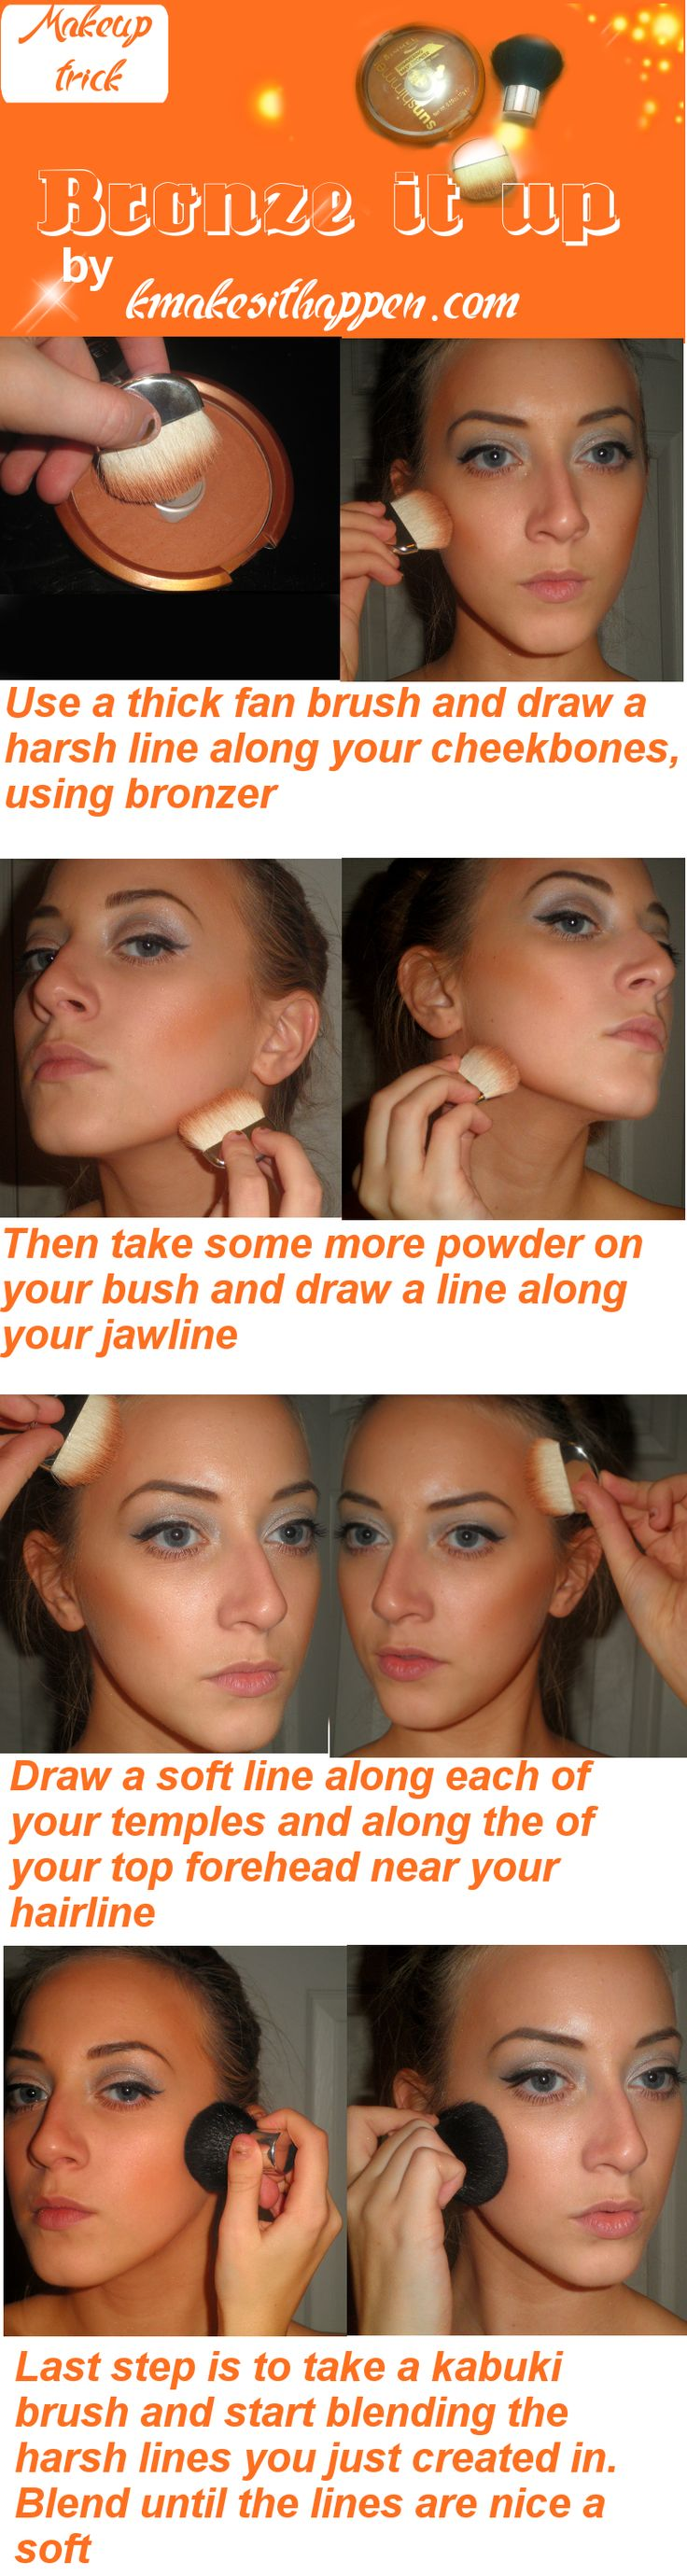 How to use Bronzer! Very helpful for someone who doesn't know how to use it correctly.